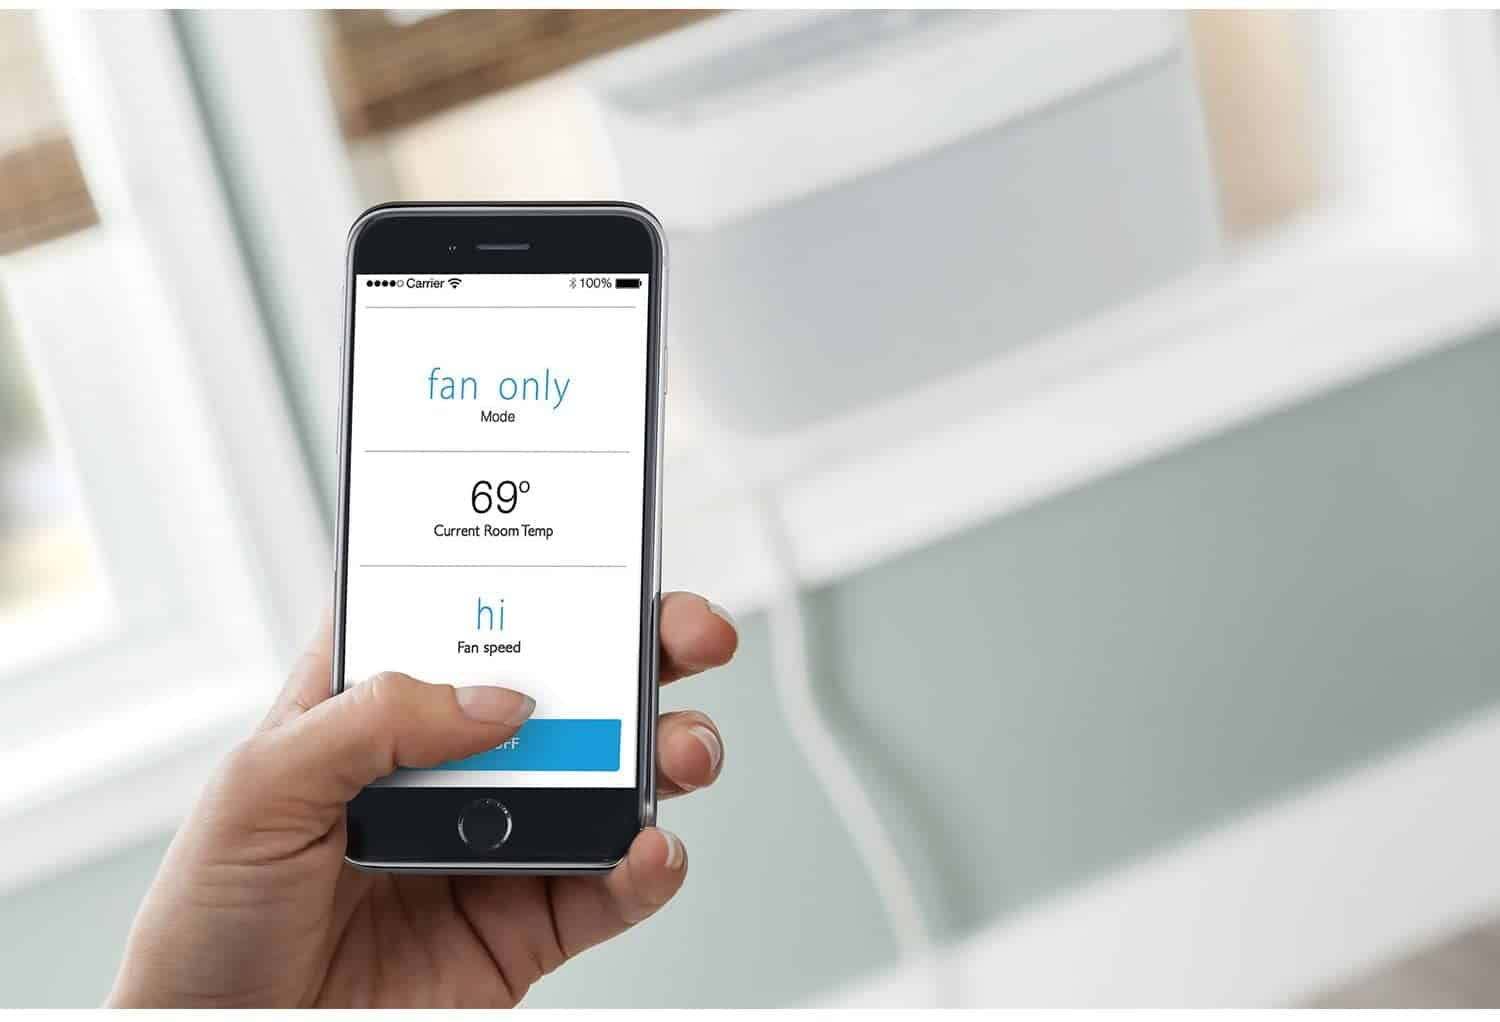 Frigidaire FGRC1044T1 Cool Connect Smart Window Air Conditioner Review